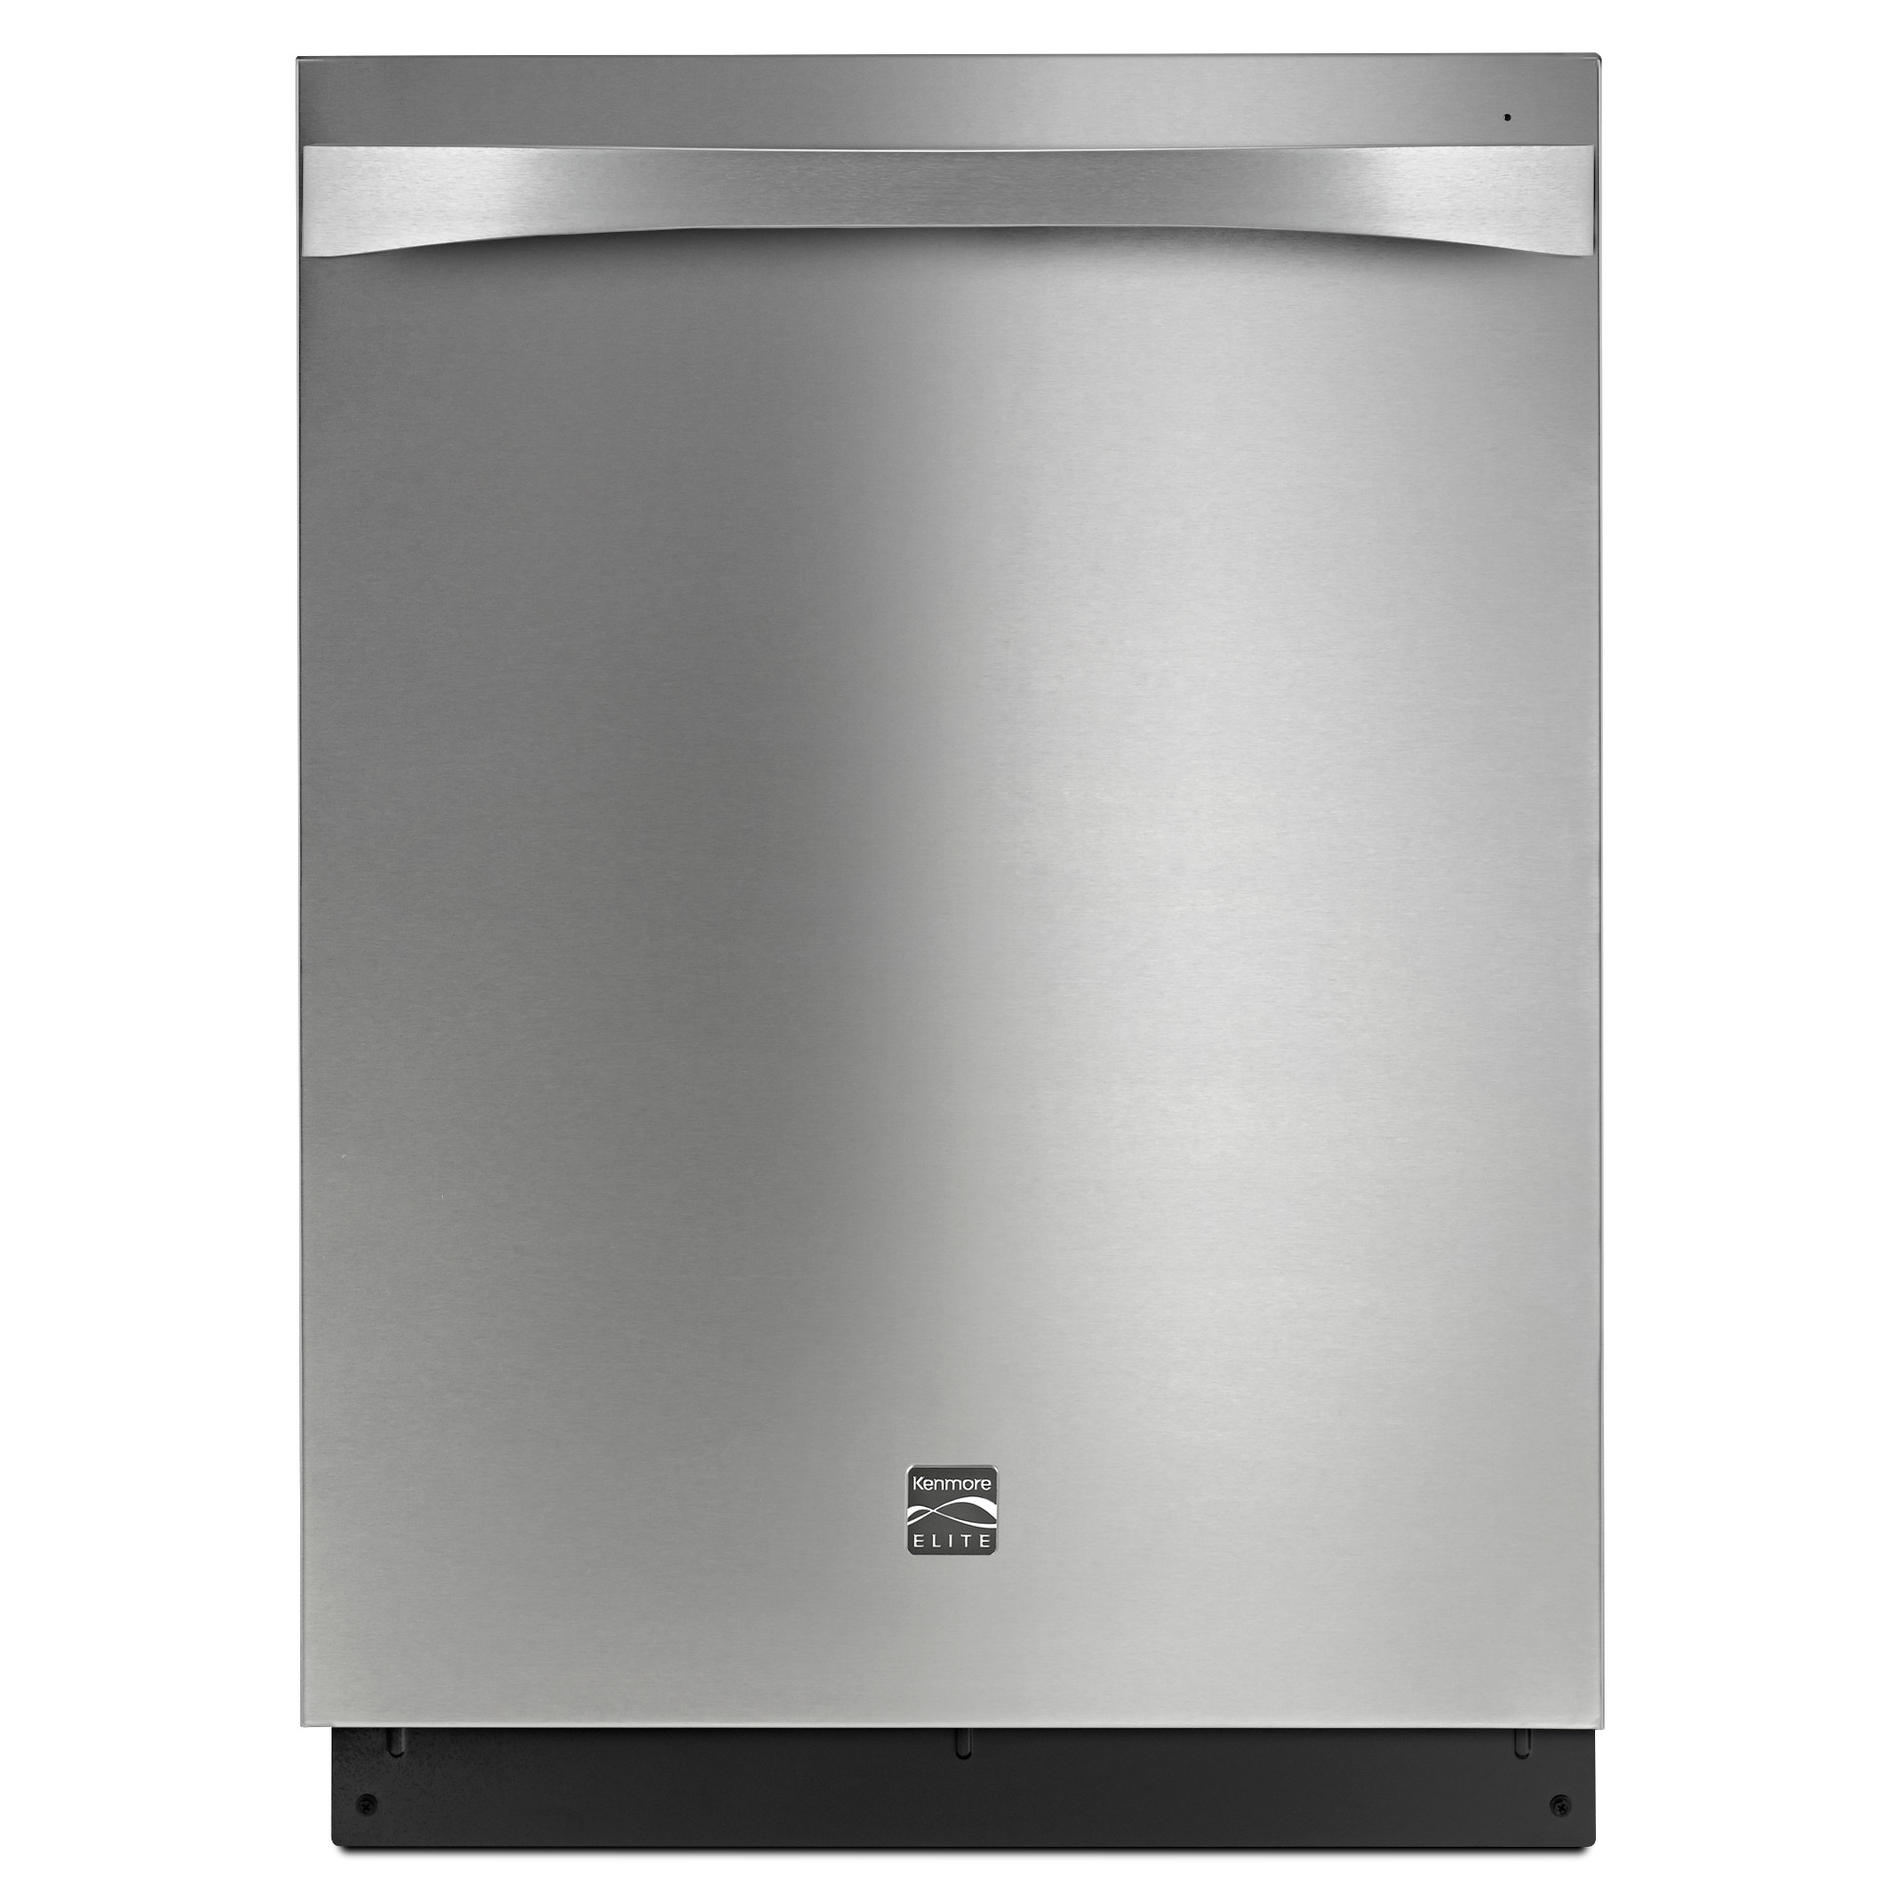 Kenmore Elite 14793 24 Built-In Dishwasher - Stainless Steel